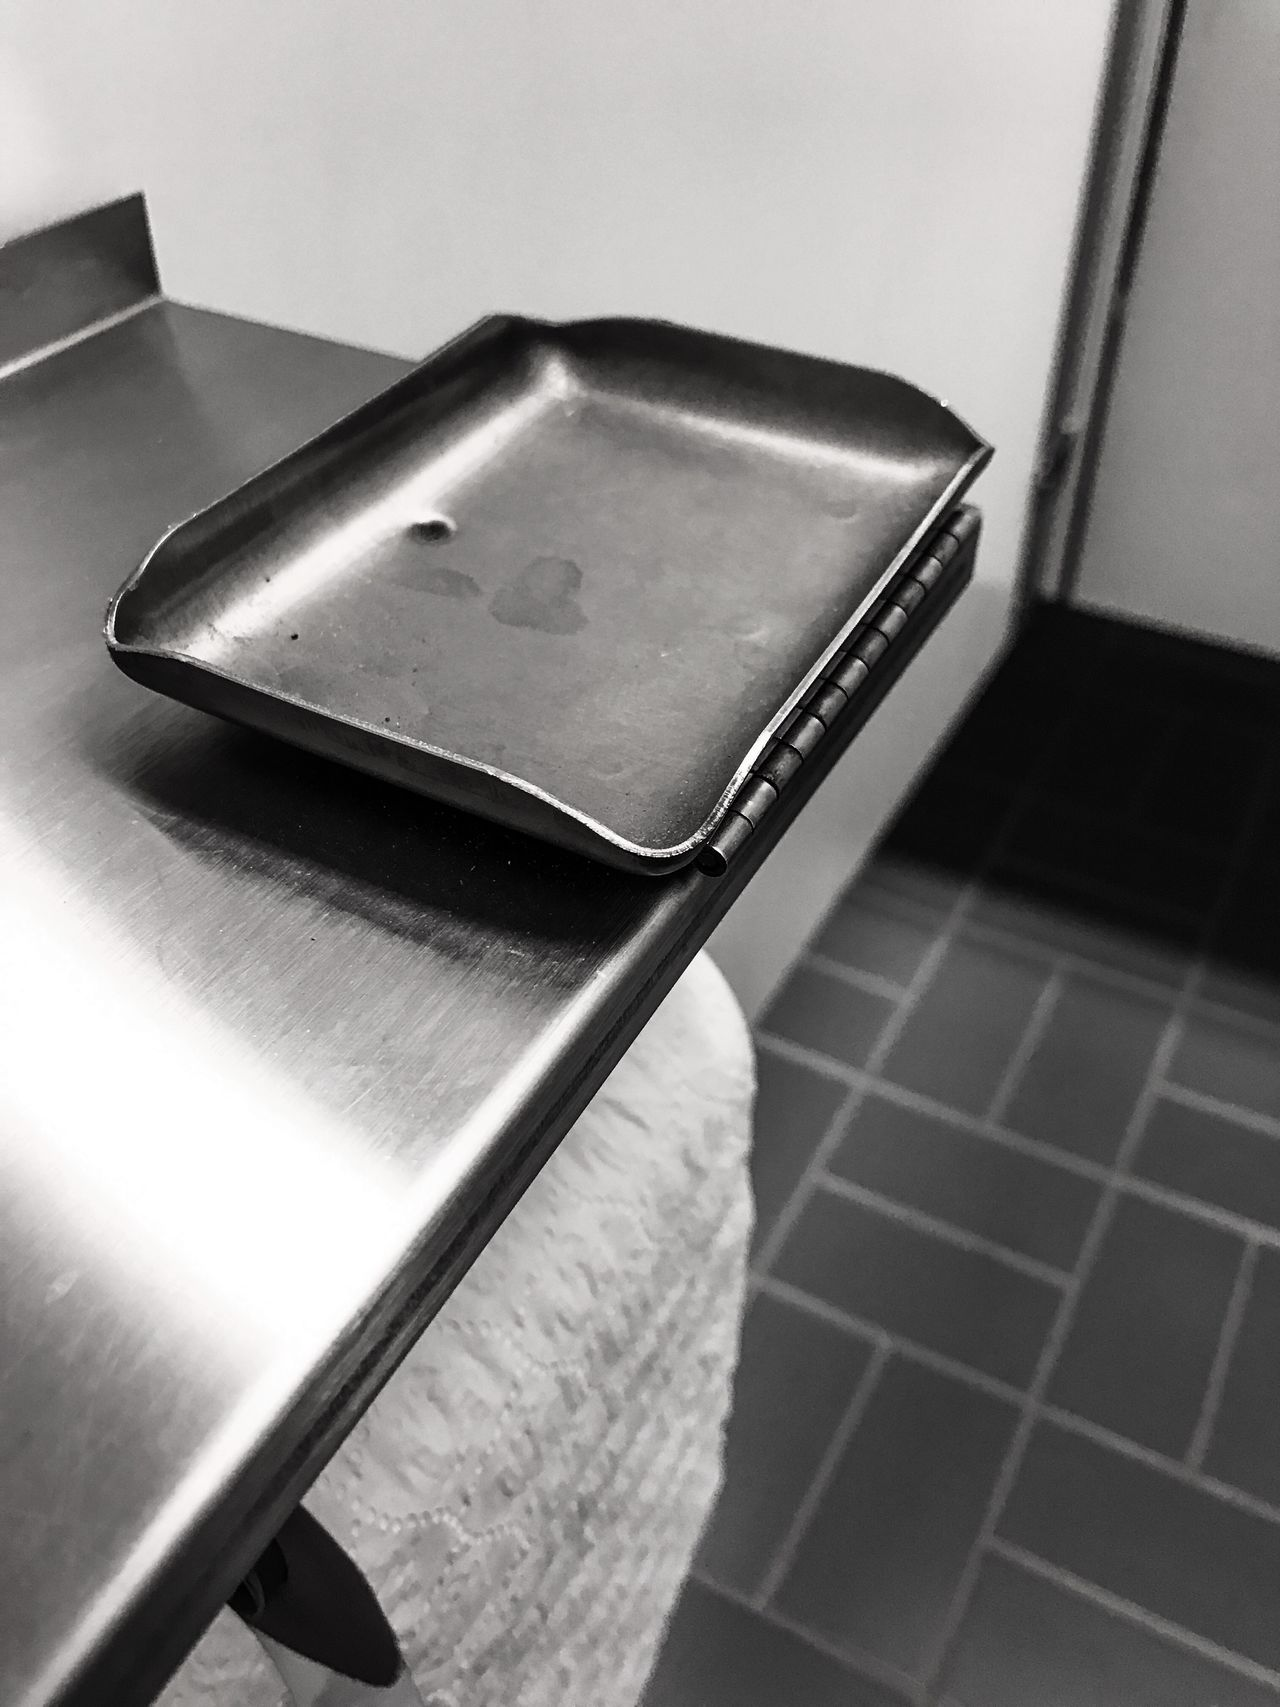 Odd find in a restroom Indoors  Metal Close-up No People Monochrome Photography Restroom Ashtray